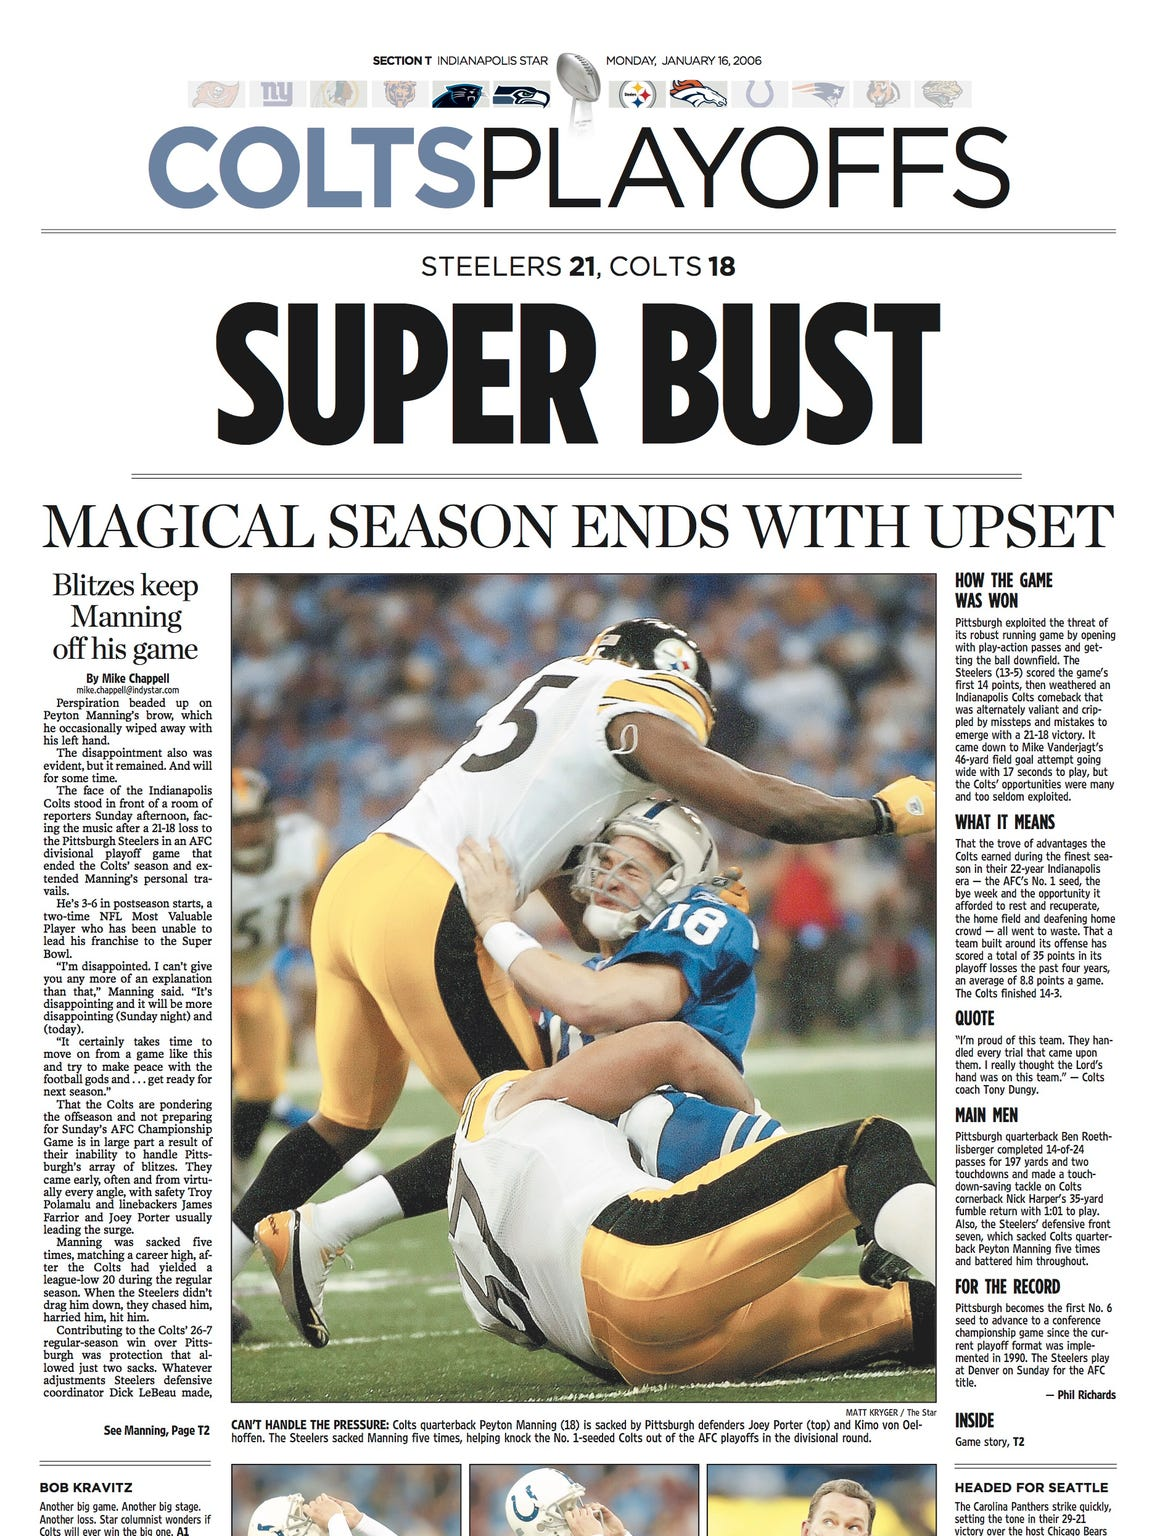 The Indianapolis Star's sports page the day after the Steelers upset the Colts.